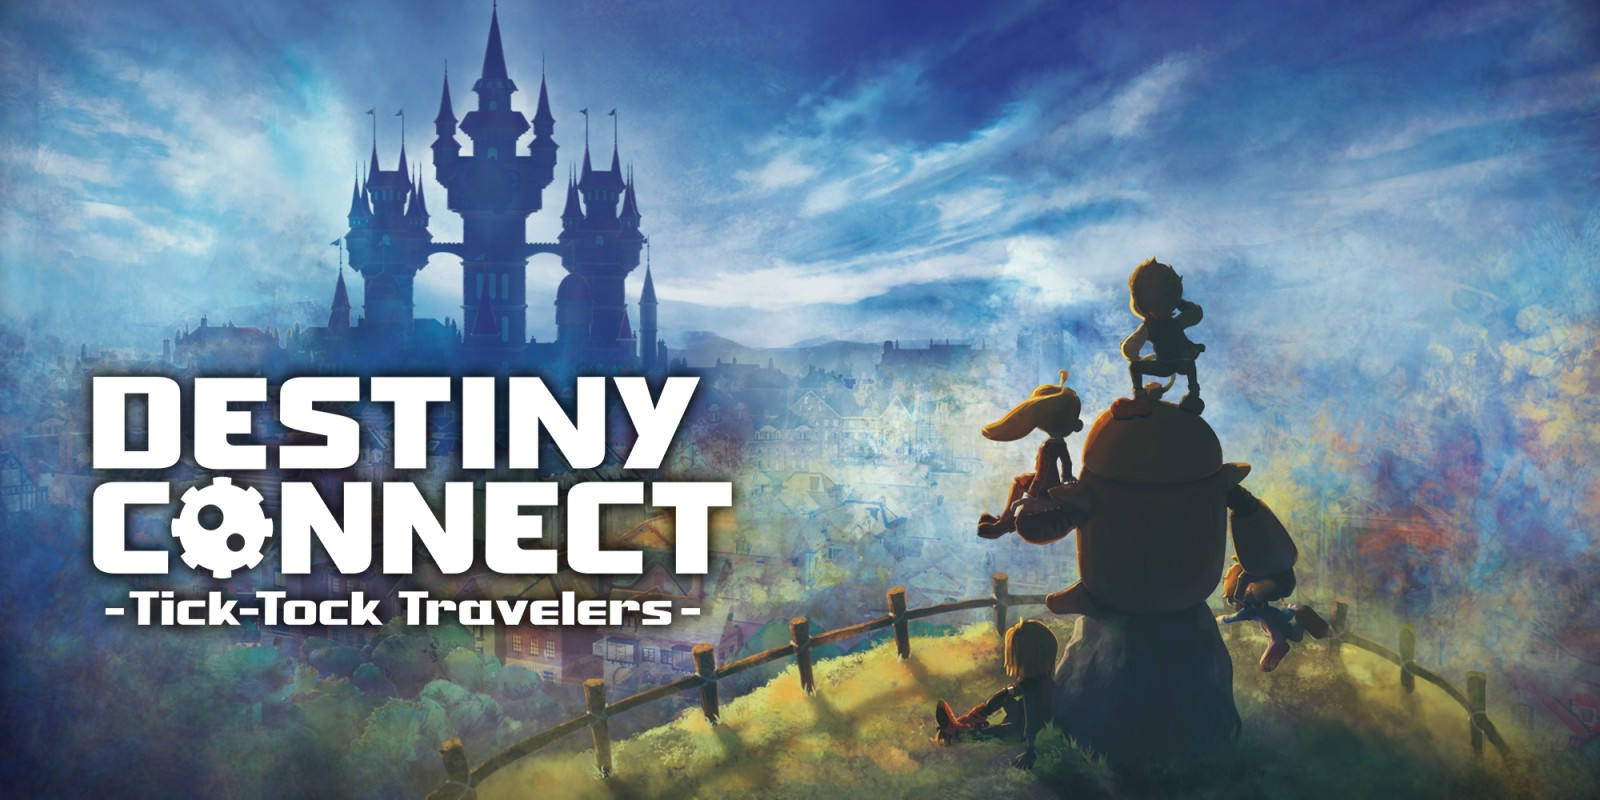 Destiny Connect: Tick-Tock Travelers phát hành trailer cho PS4, Switch